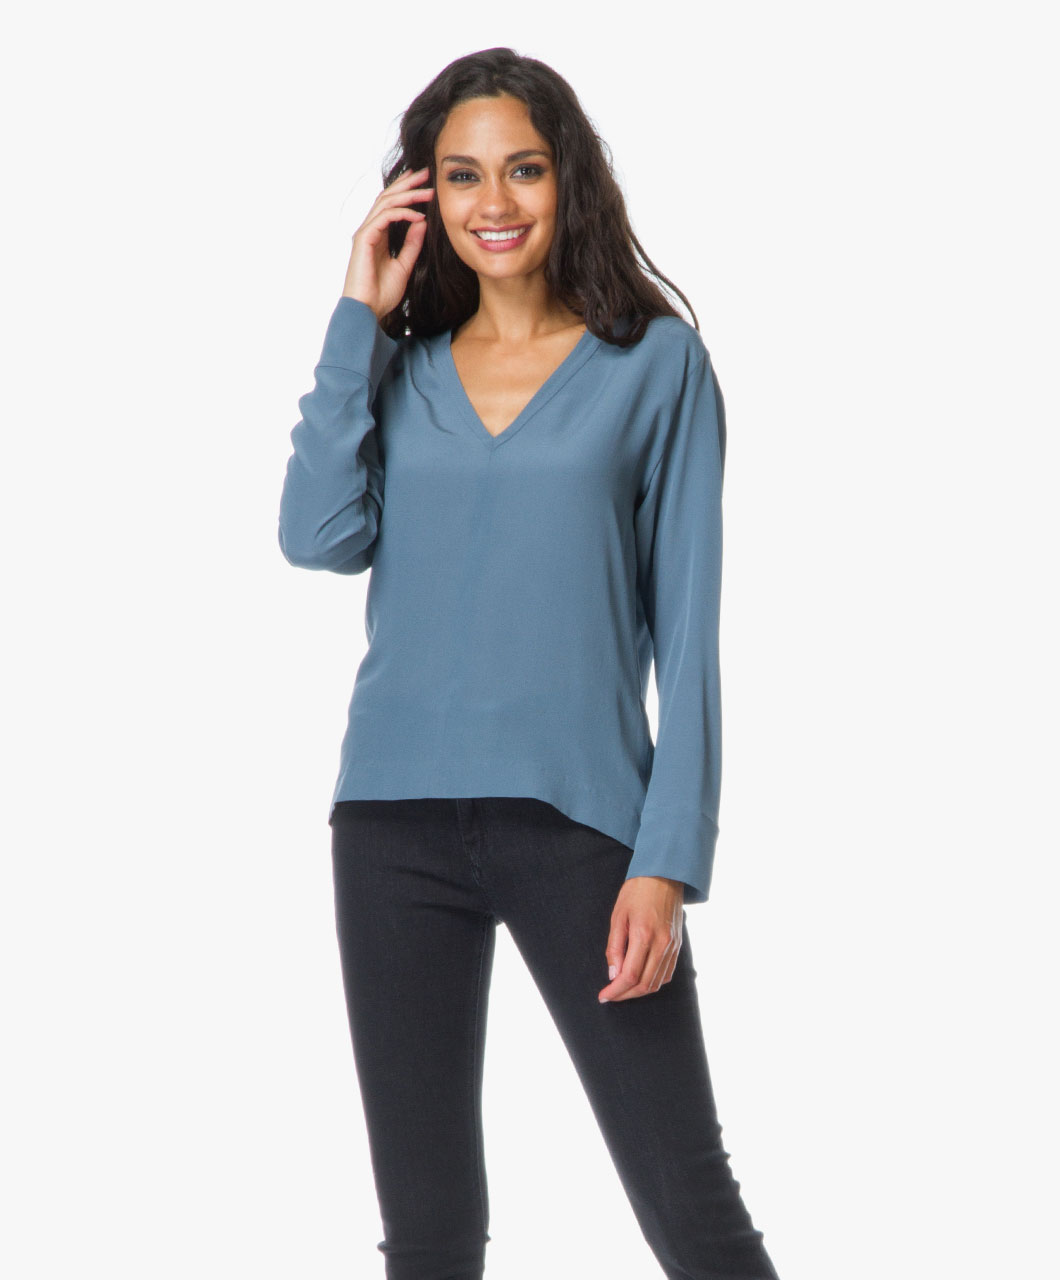 44e5e60bd90 Shop the look - On-trend blue | Perfectly Basics